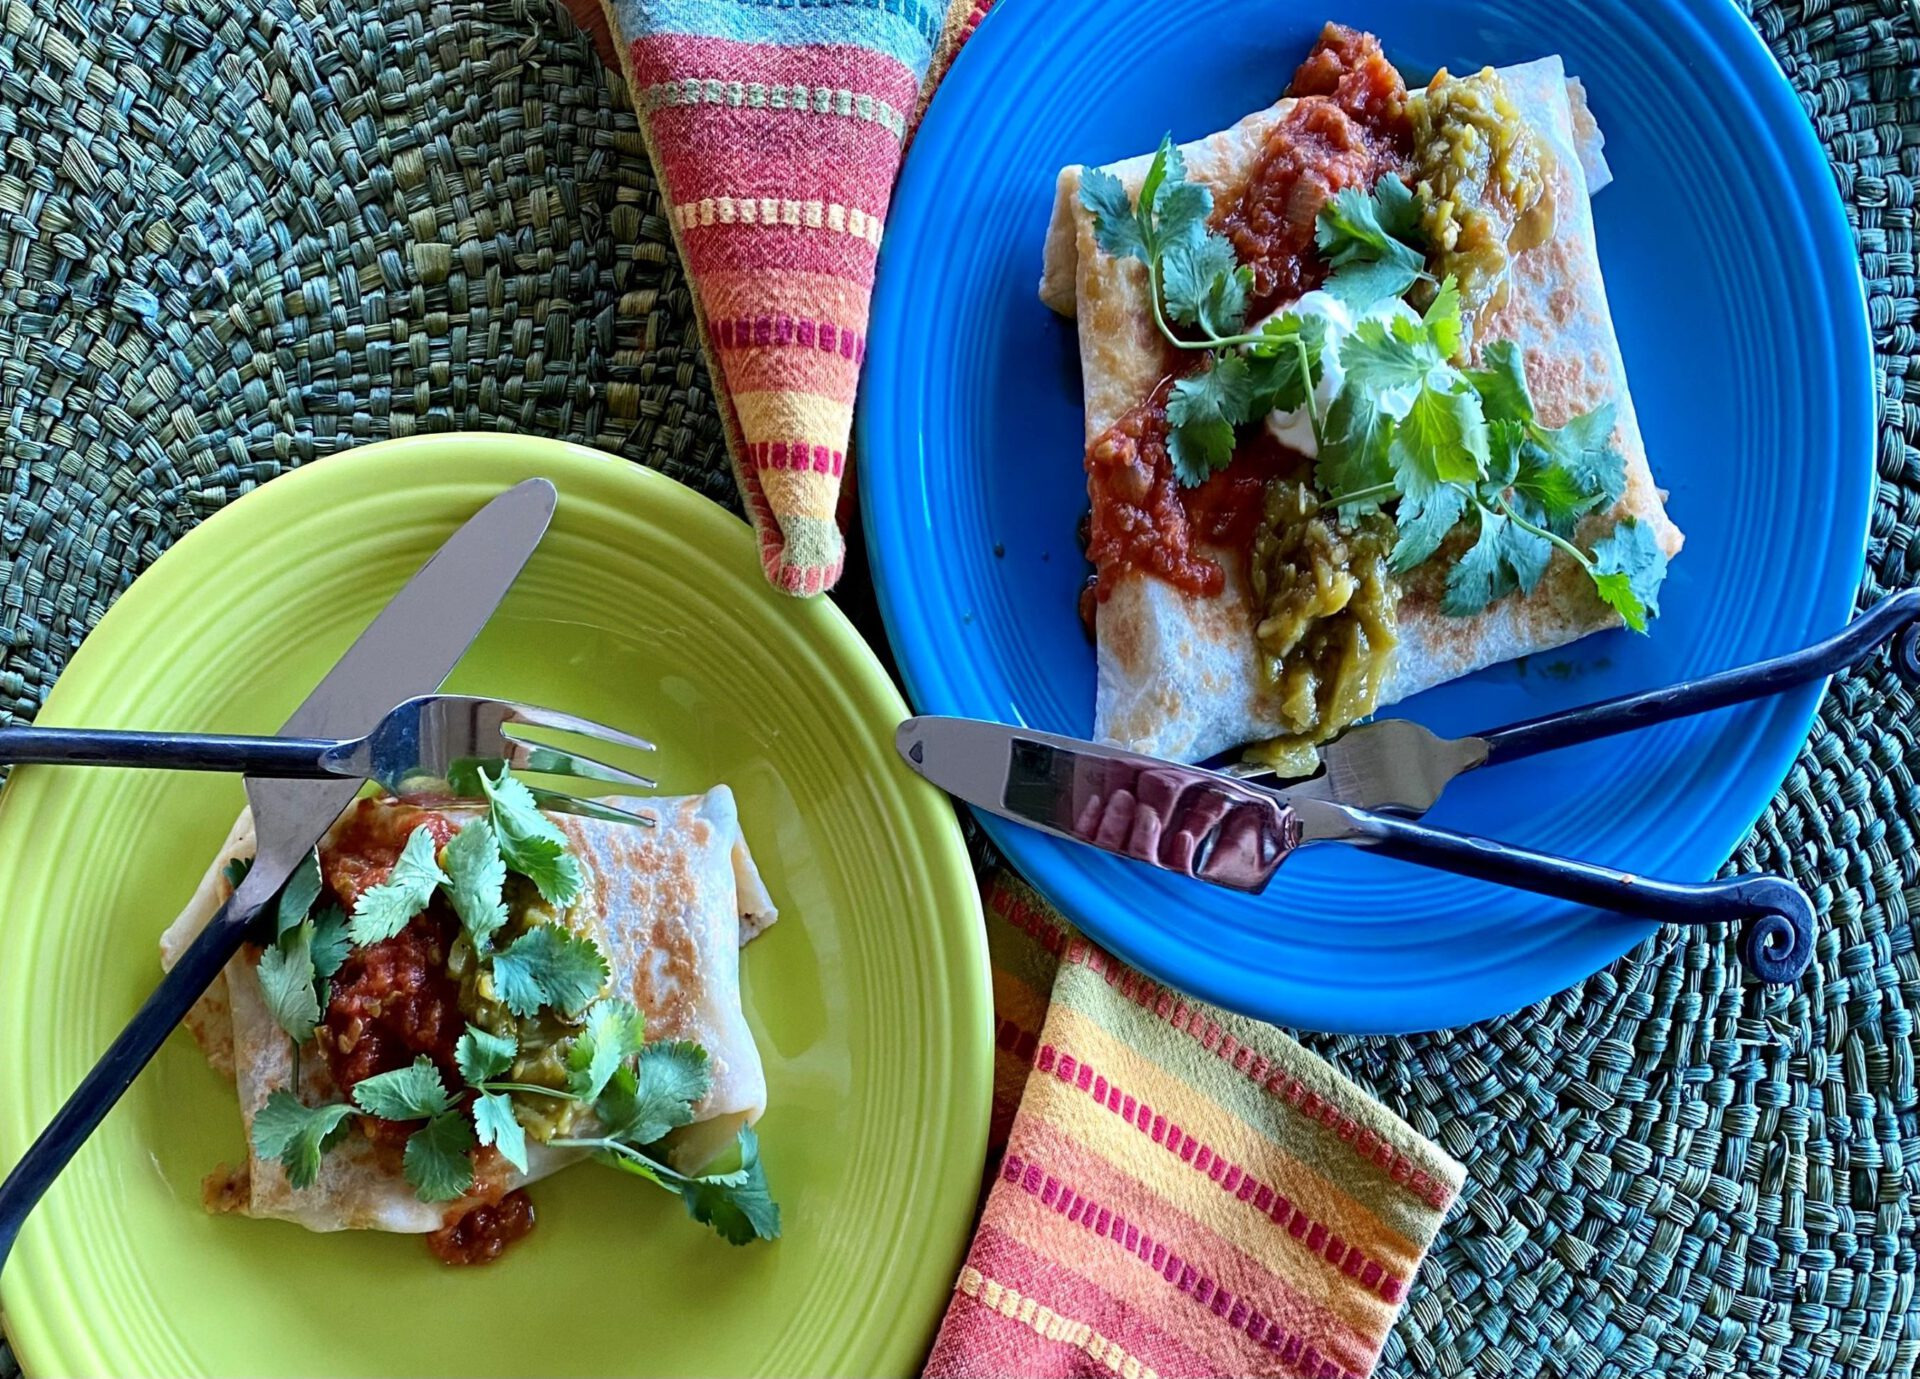 burritos on green and blue plates